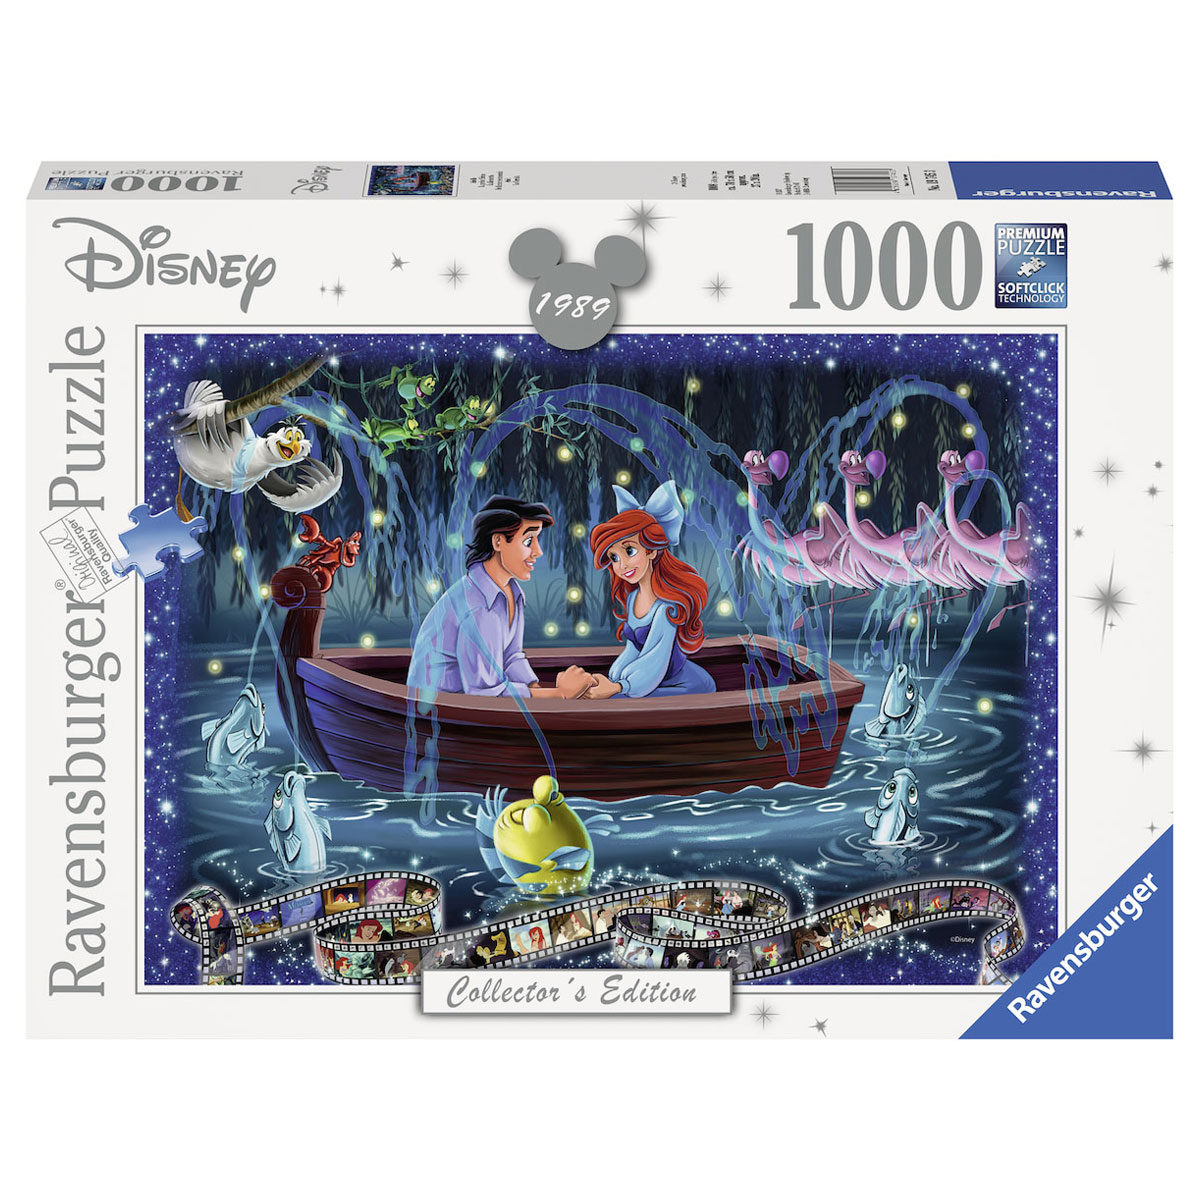 Disney Collector's Edition Ariël, 1000st.